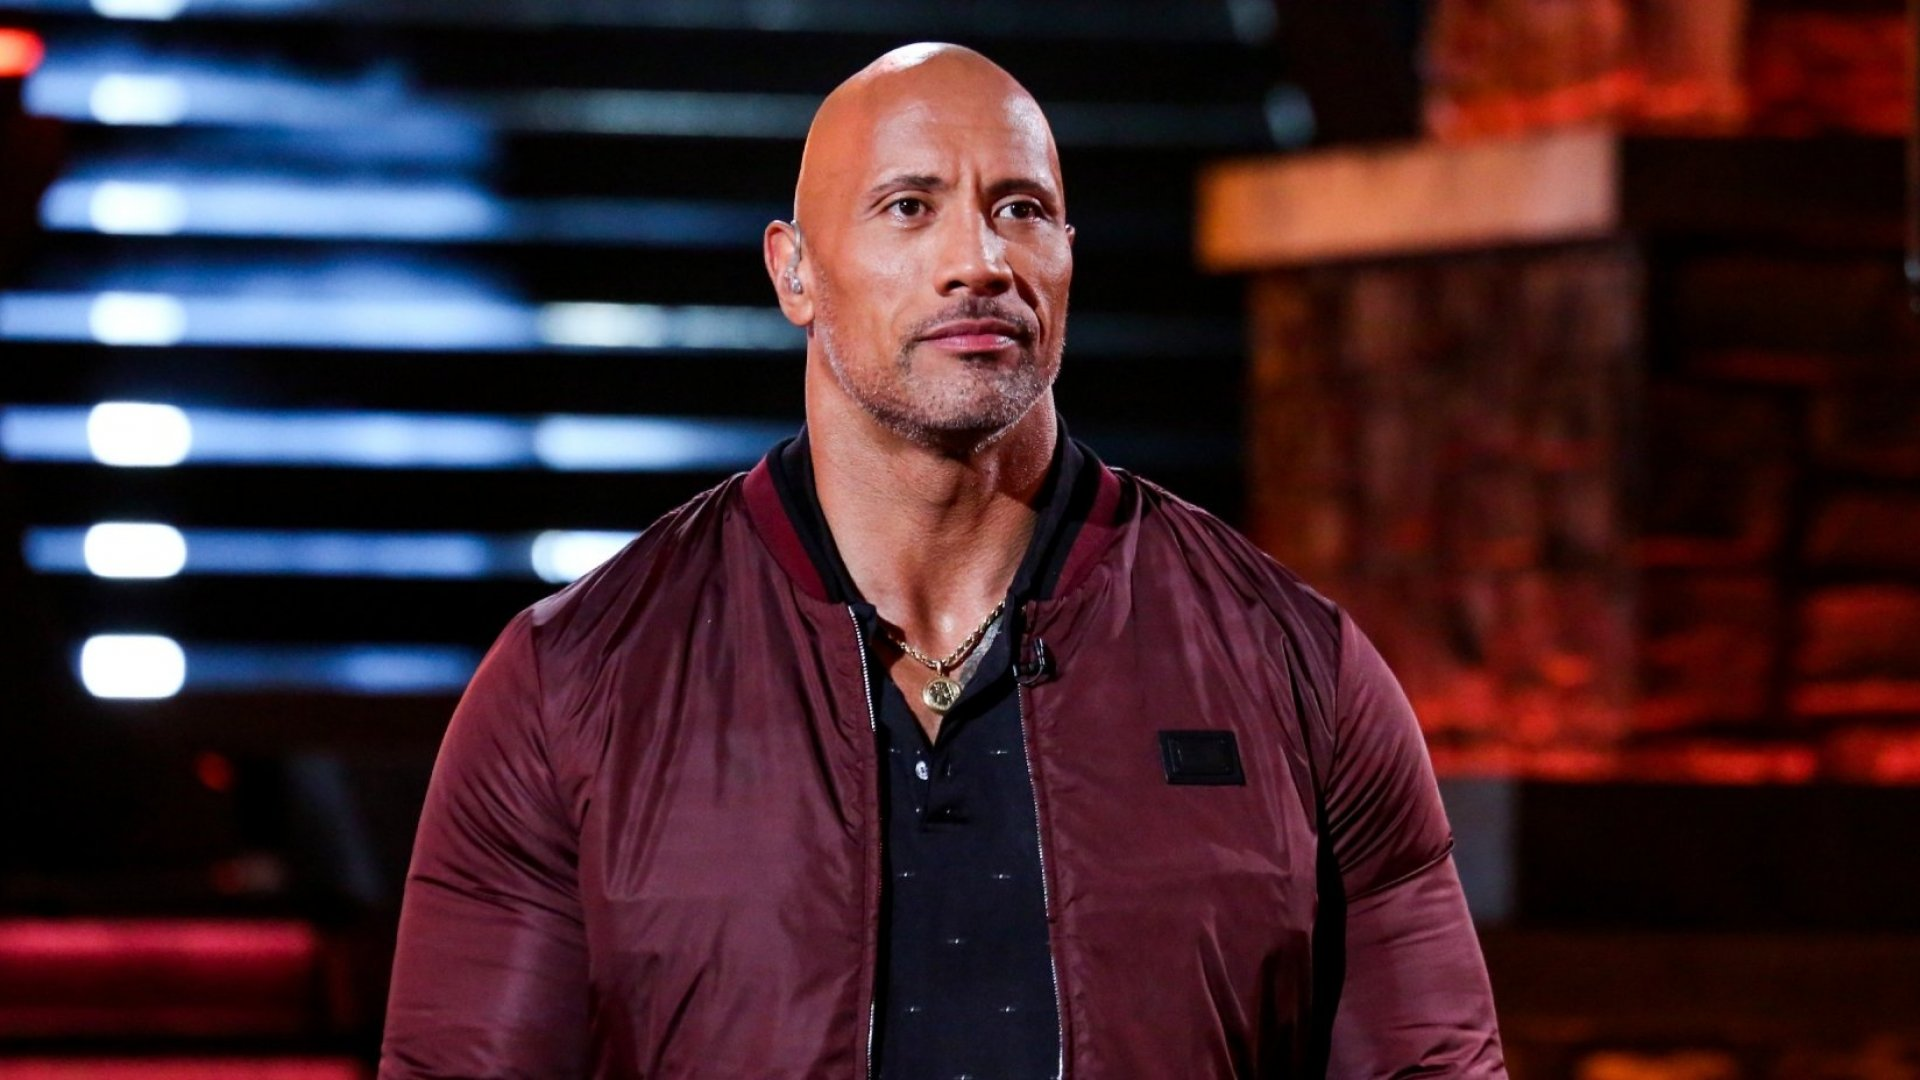 In Just 3 Words, Dwayne 'The Rock' Johnson Lays Out His Best Advice for Success